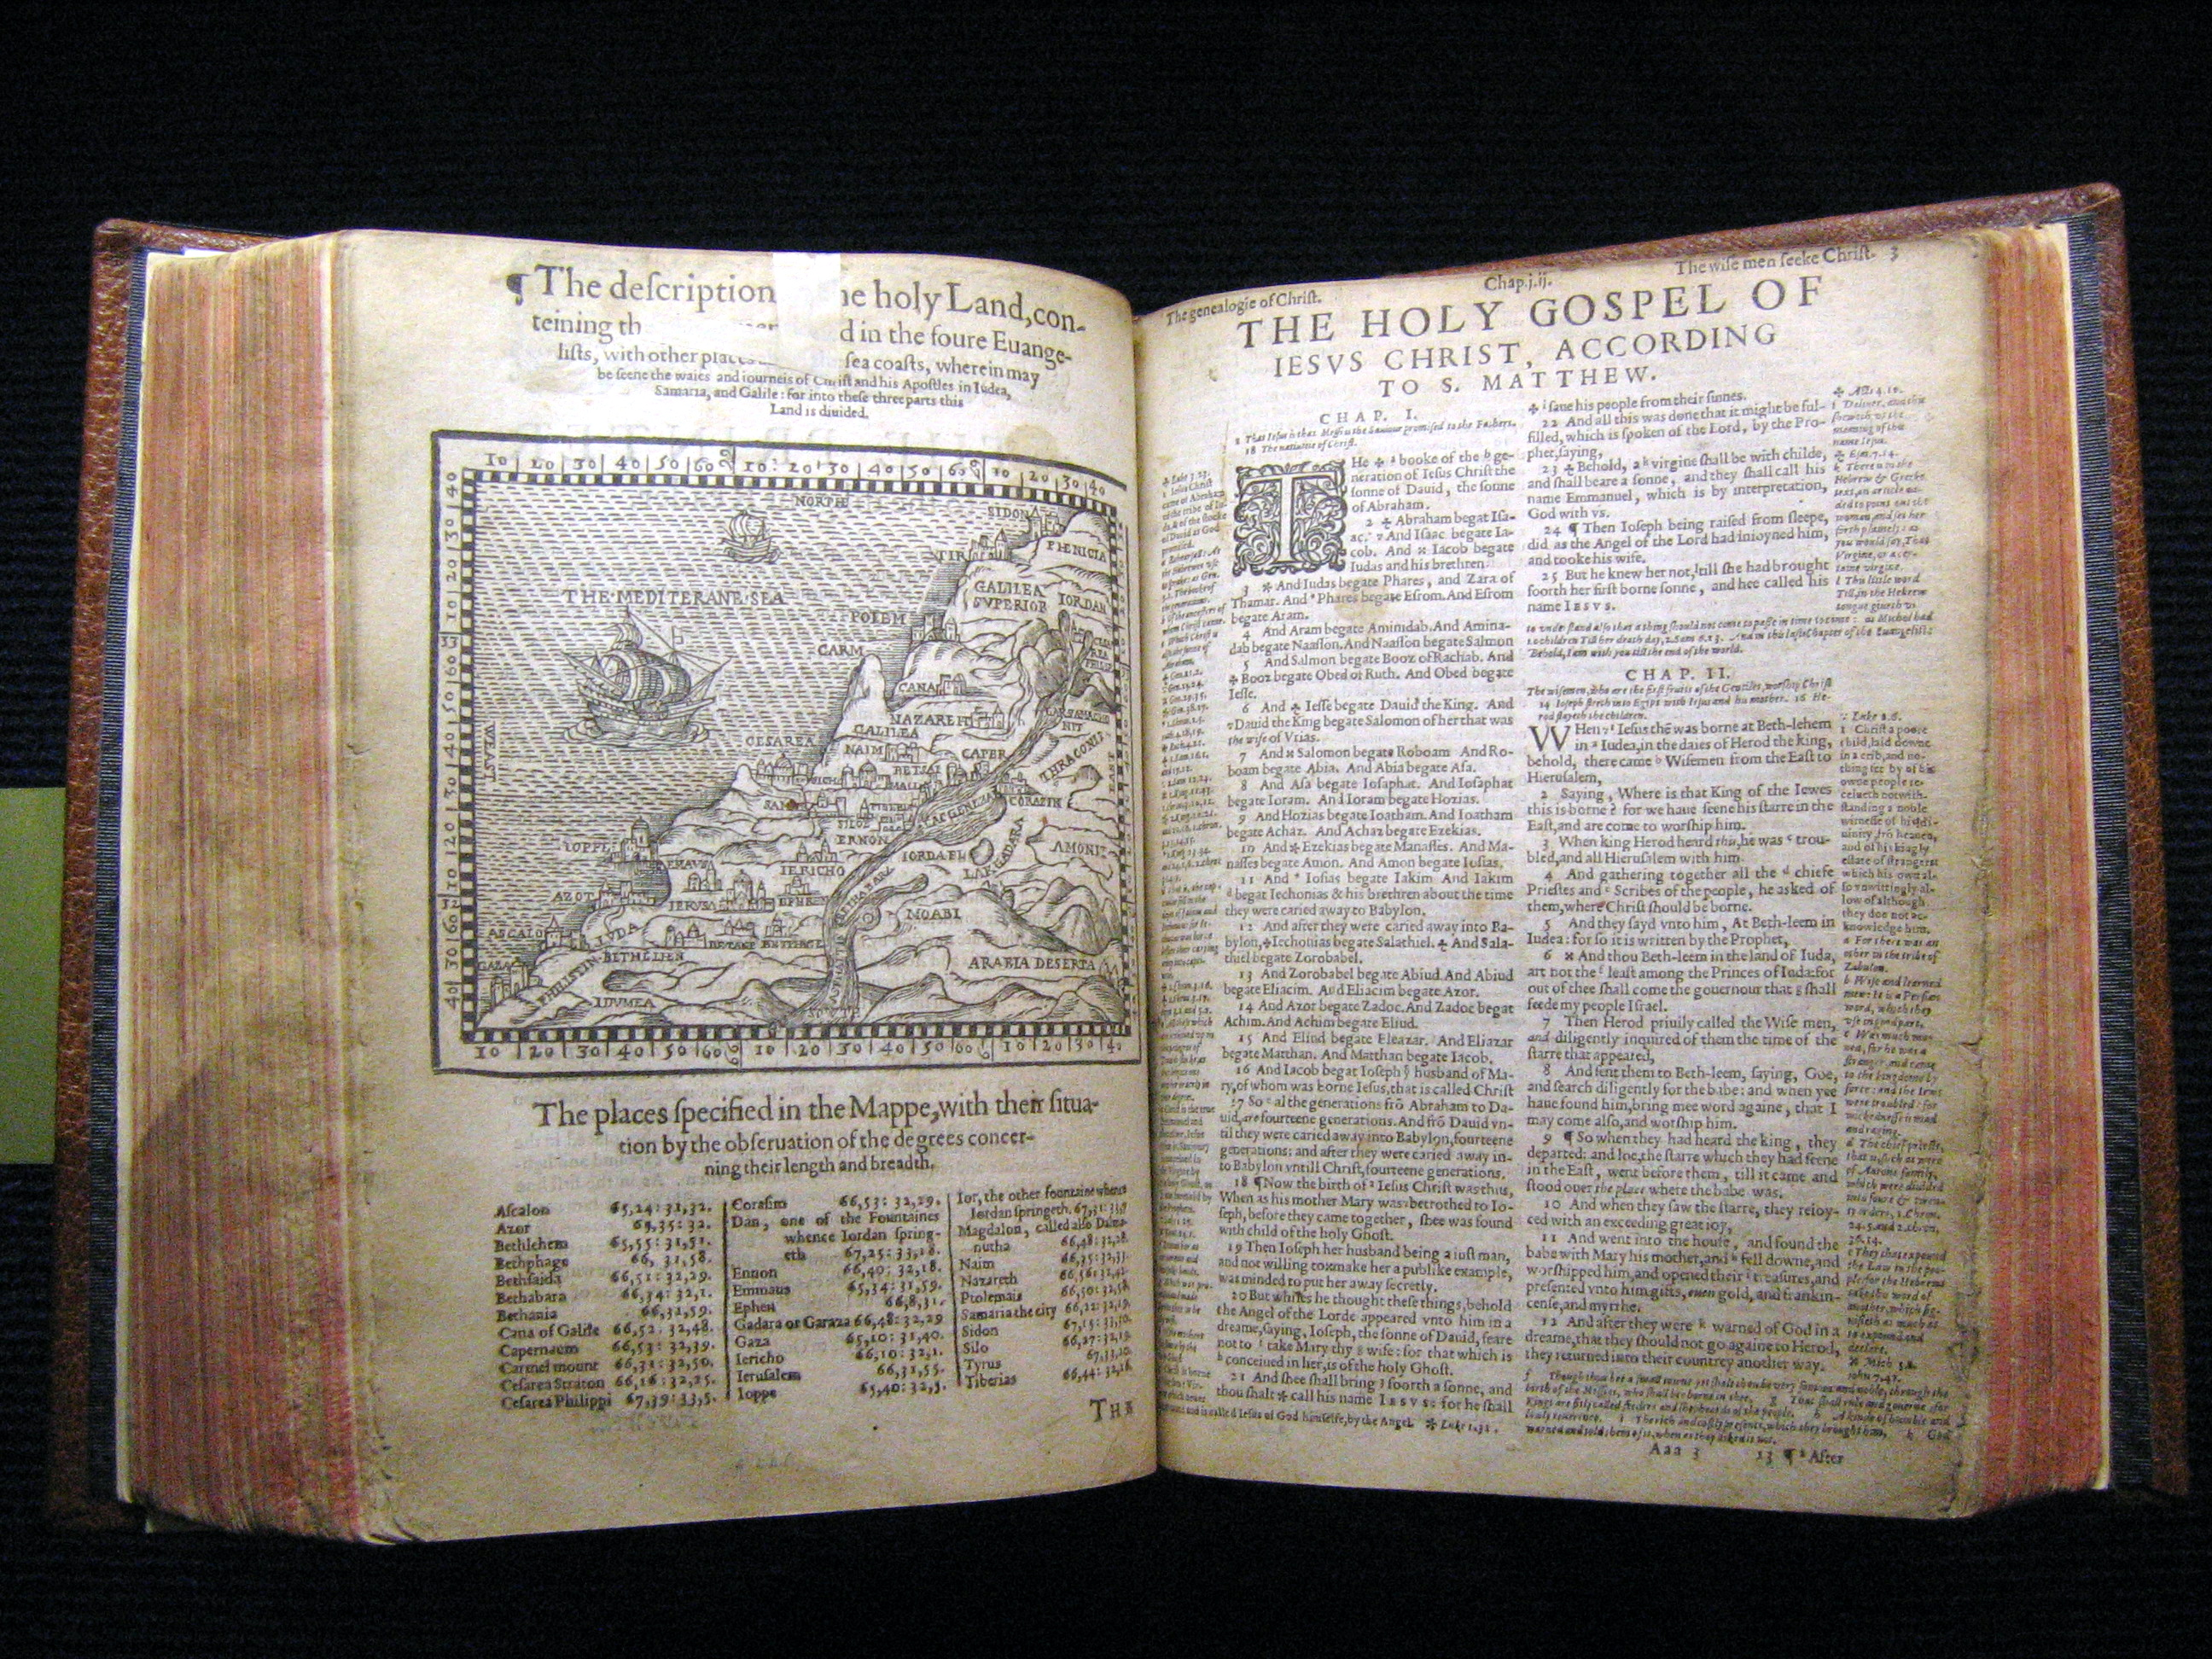 Pages from the 1540 Geneva Bible